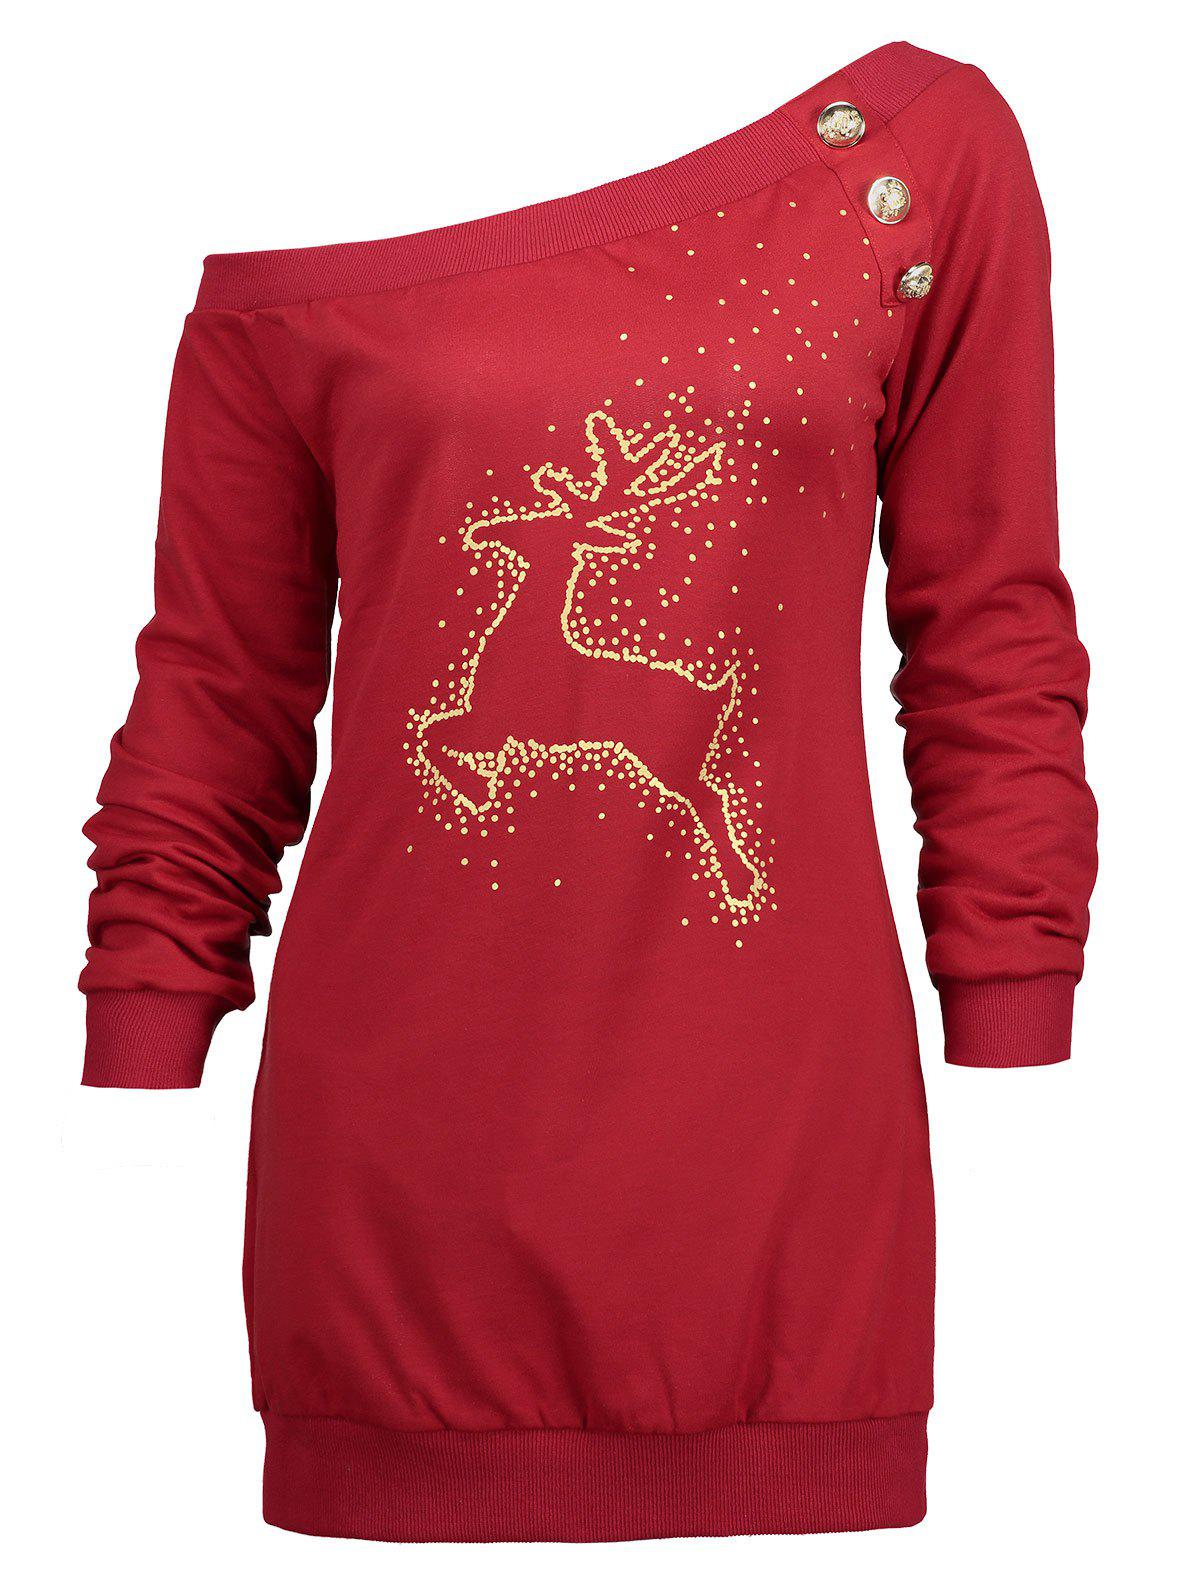 Christmas Reindeer Printed Skew Neck Tunic Sweatshirt plus size christmas reindeer skew collar sweatshirt